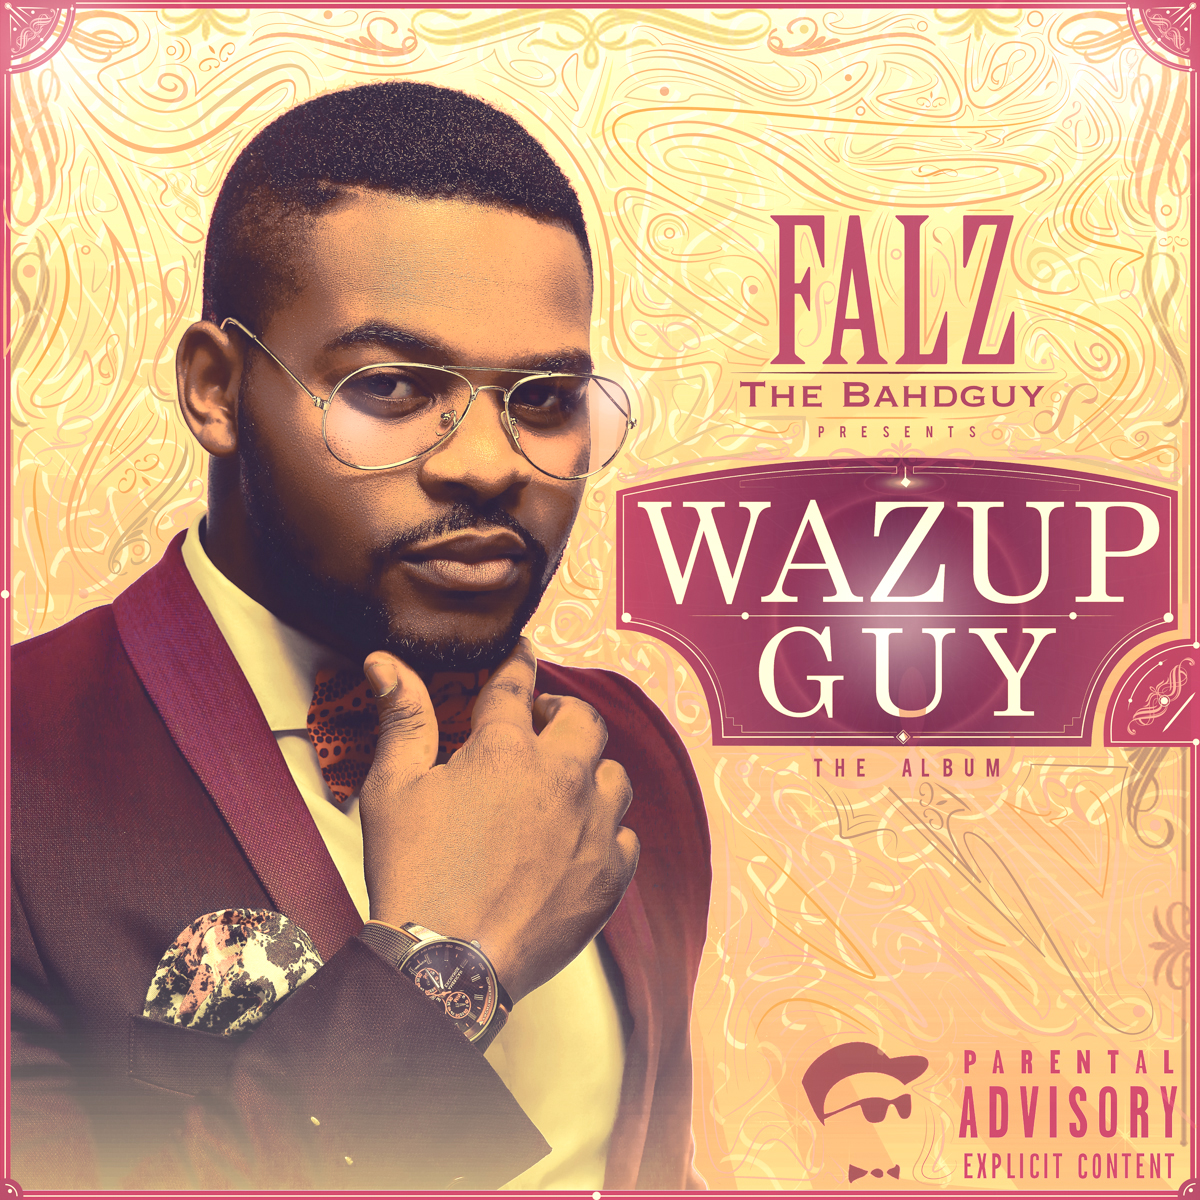 Falz - Wazup Guy Cover ART